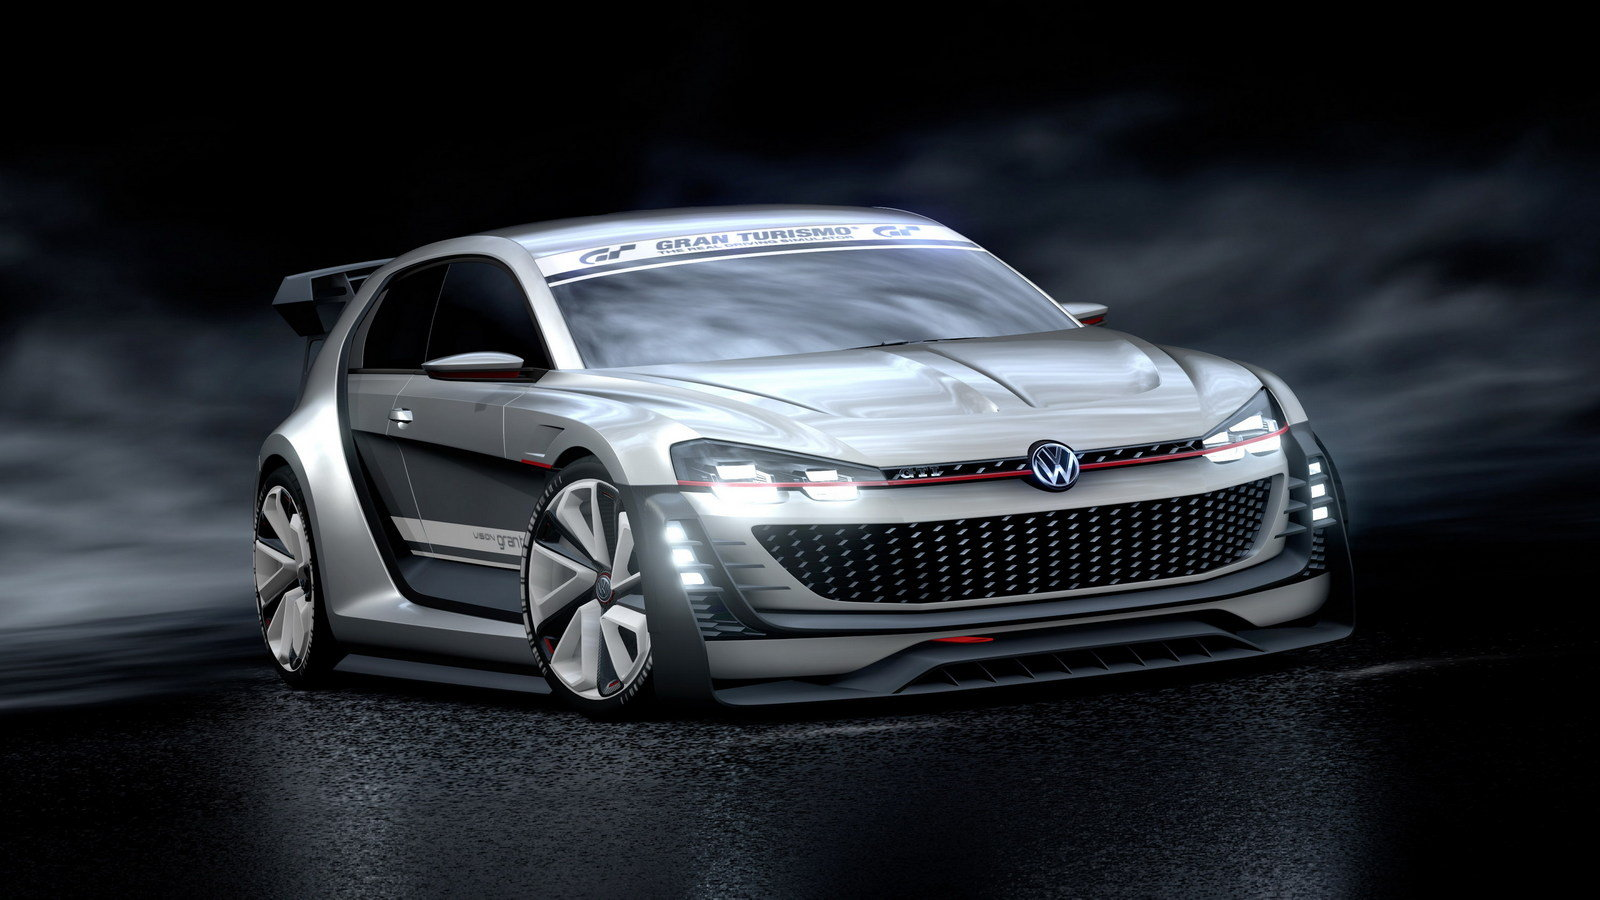 Best Awd Sports Cars >> 2015 Volkswagen GTI Supersport Vision Gran Turismo | Top Speed